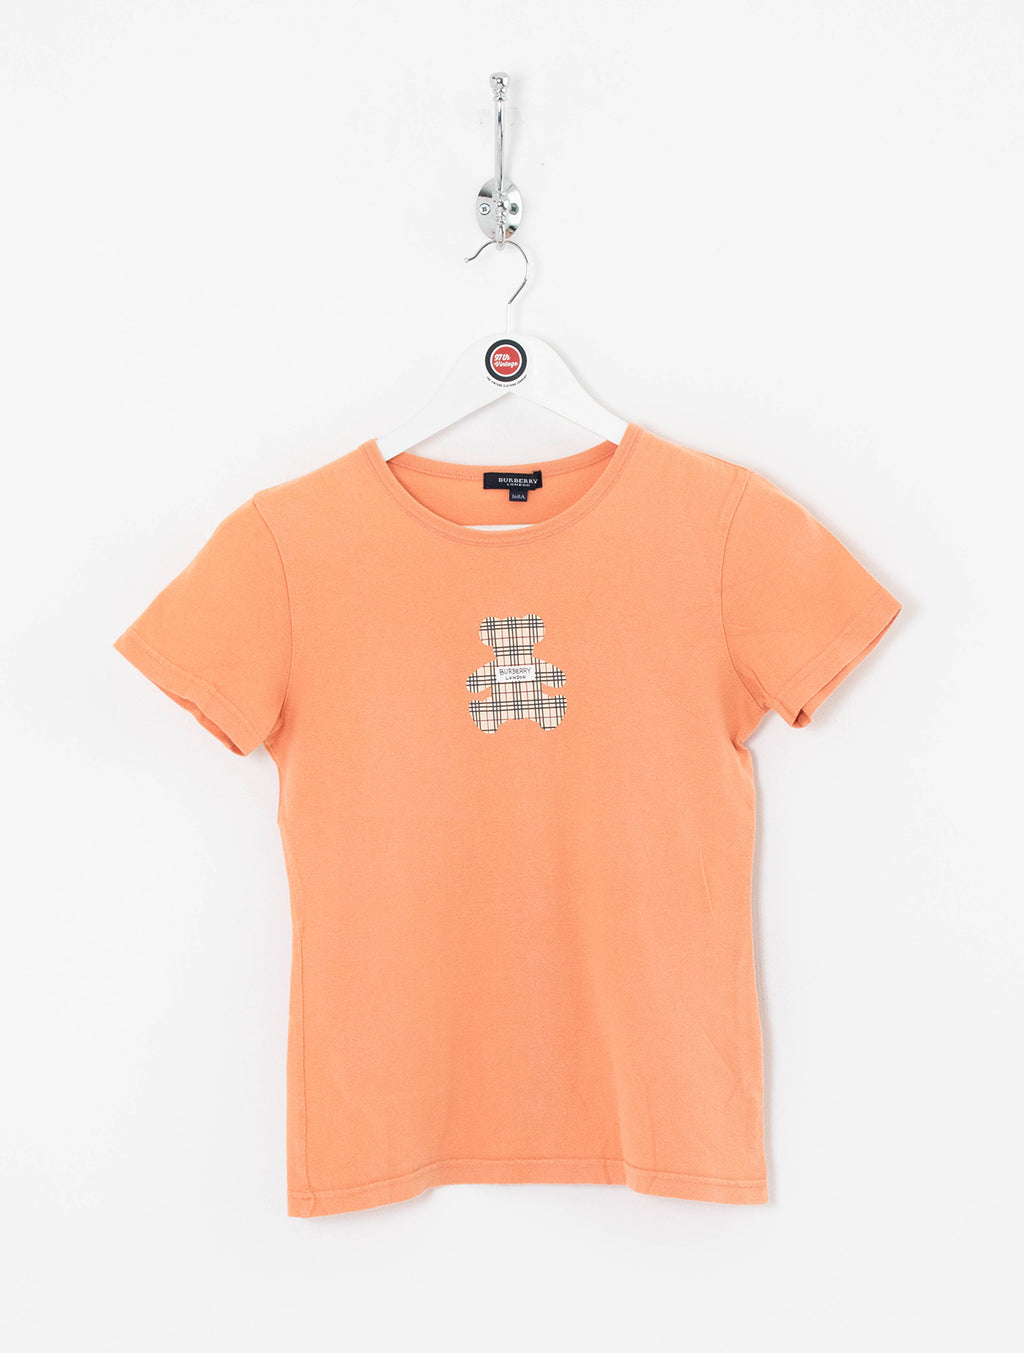 Womens Burberry T-Shirt (XS)